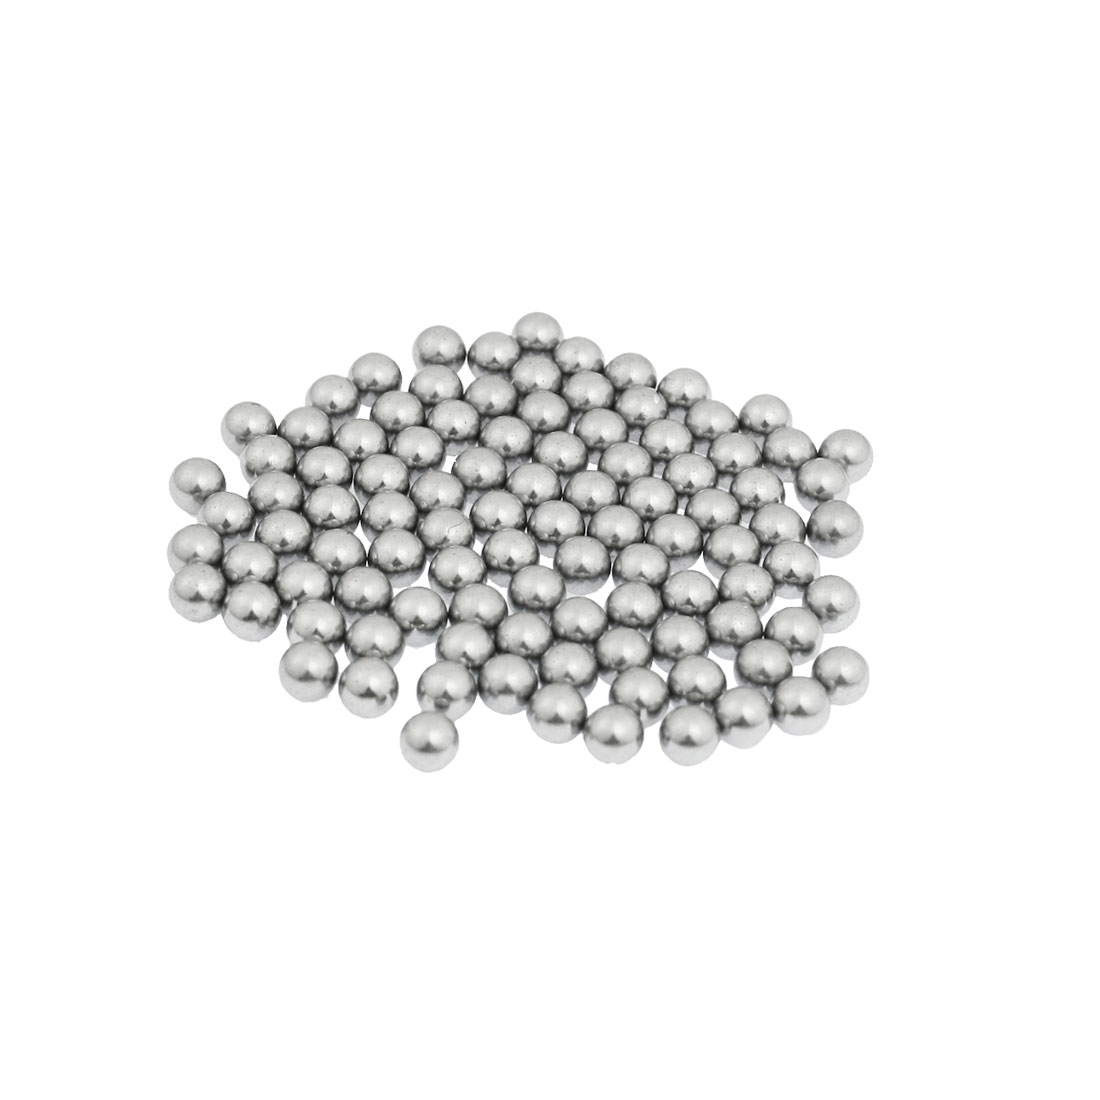 "200 Pcs Carbon Steel Balls Bearings 5mm 1/5"" for Bicycle Casters"